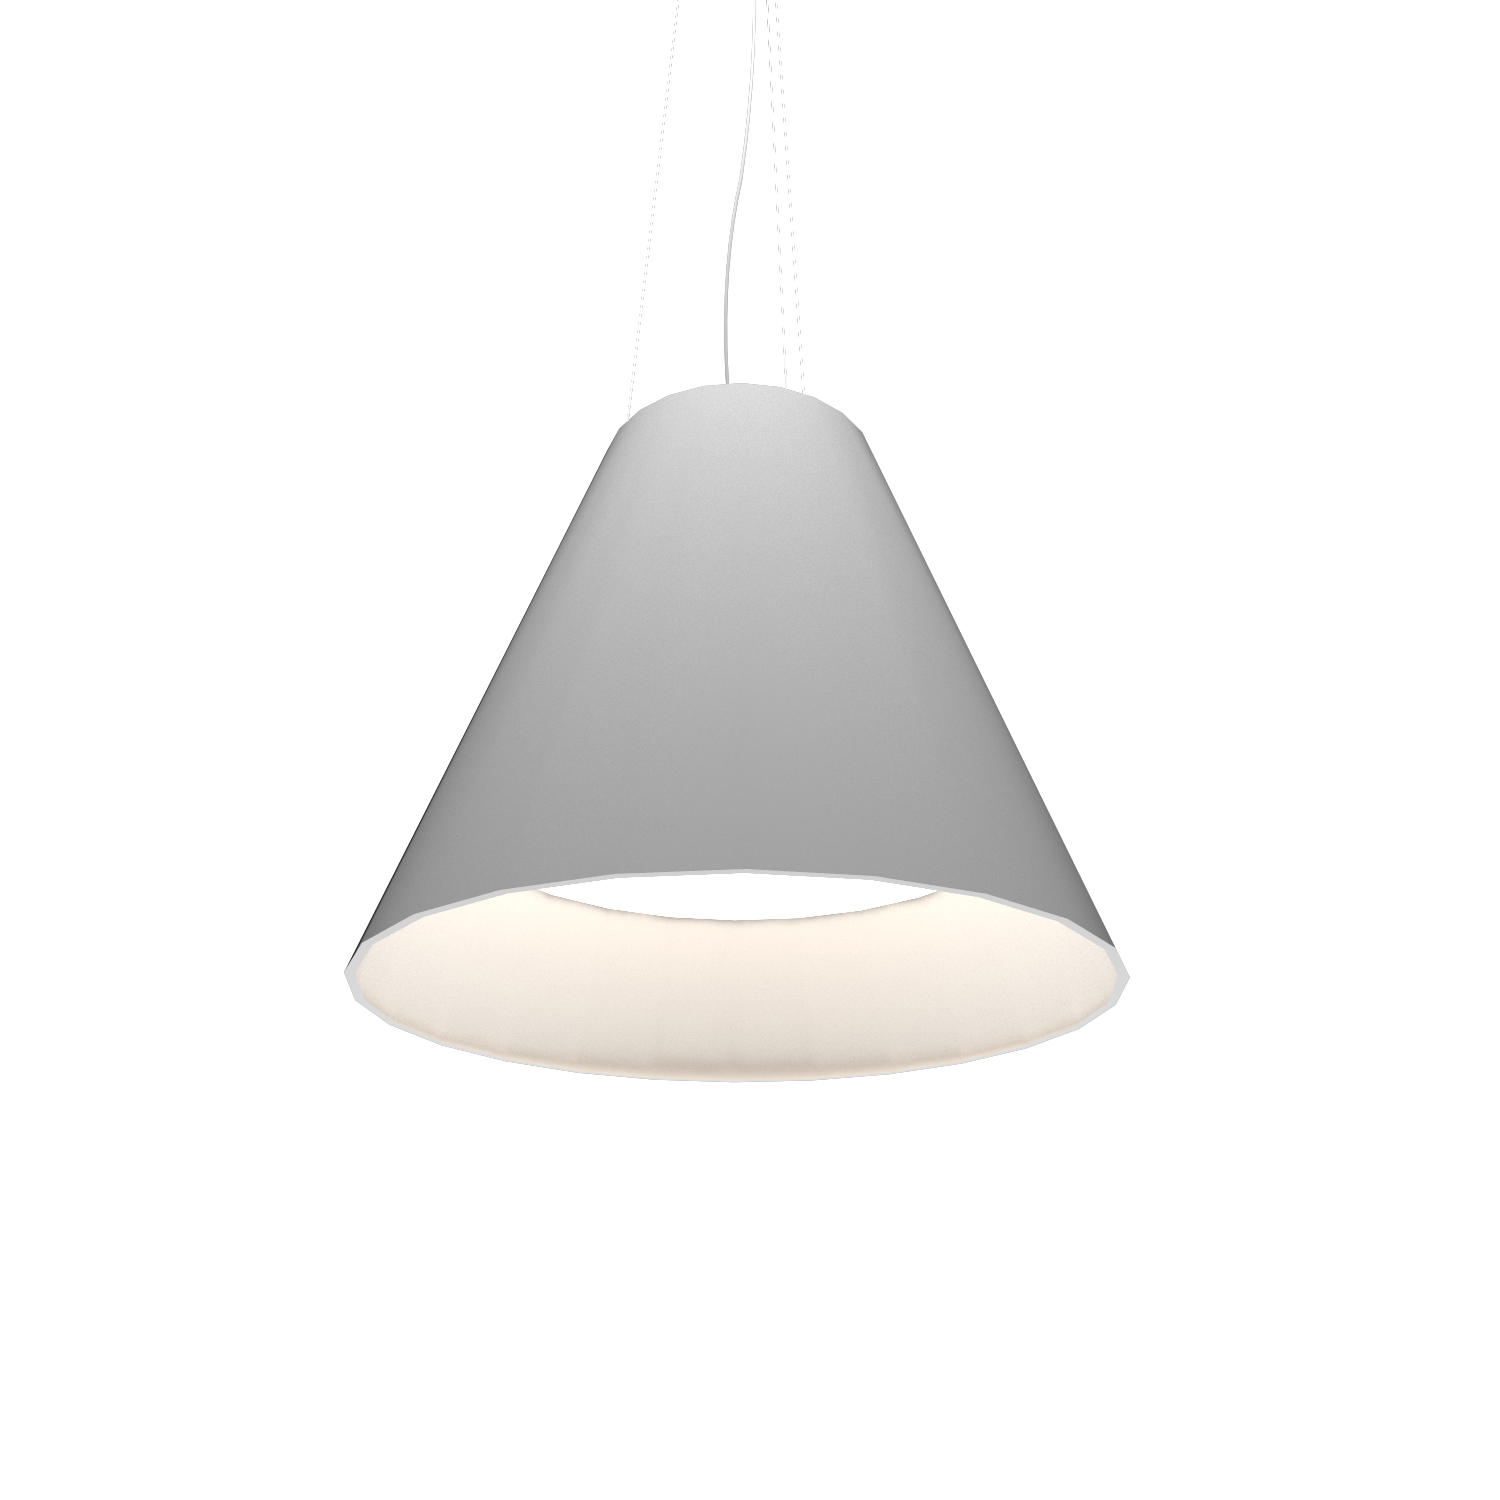 Pendant Lamp Accord Cônico 295 - Cônica Line Accord Lighting | 07. White